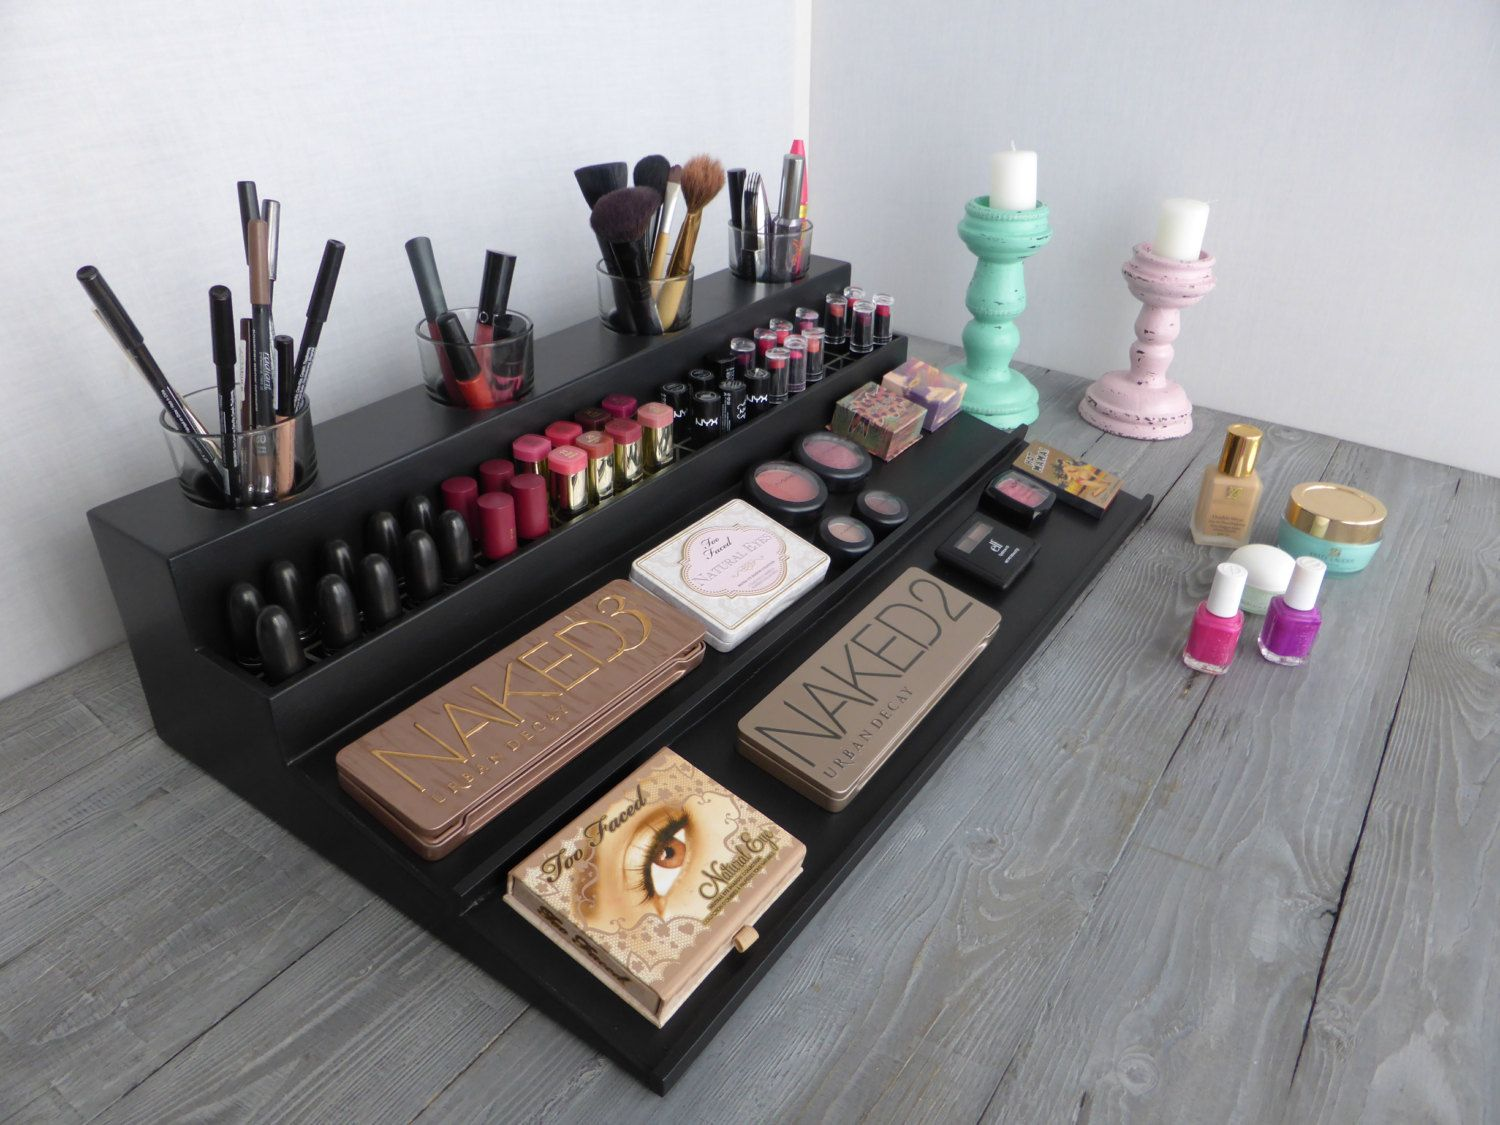 Best makeup organizer ideas makeup makeup organizer Makeup organizer ideas